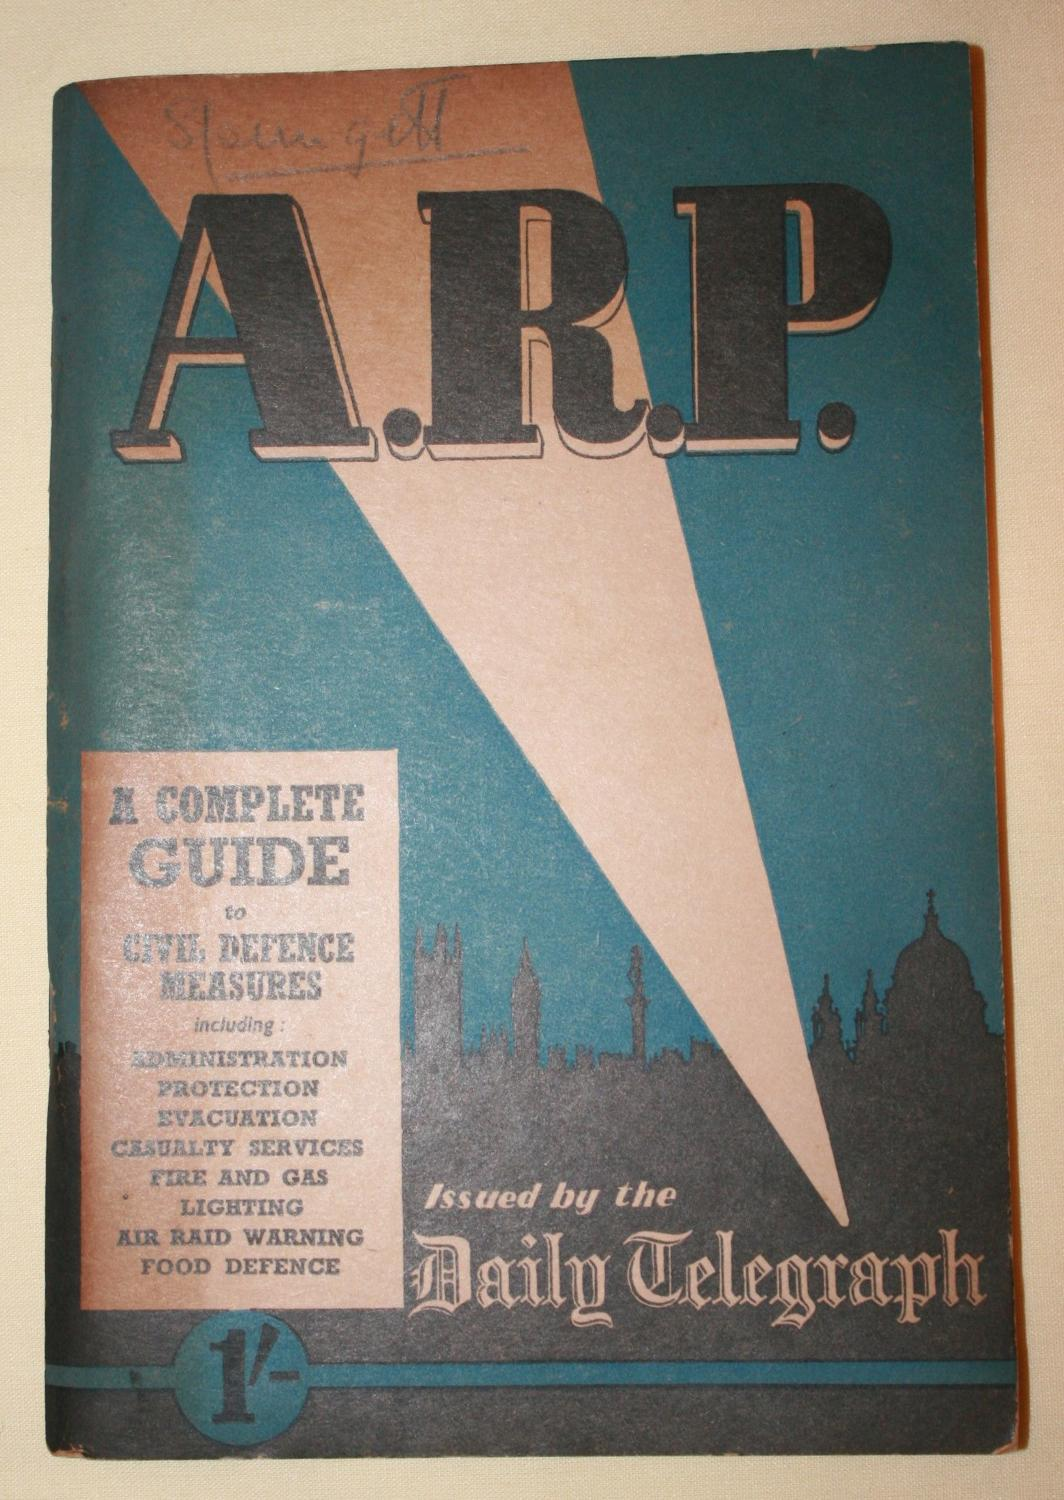 A WWII ARP A COMPLETE GUIDE TO CIVIL DEFENCE MEASURES